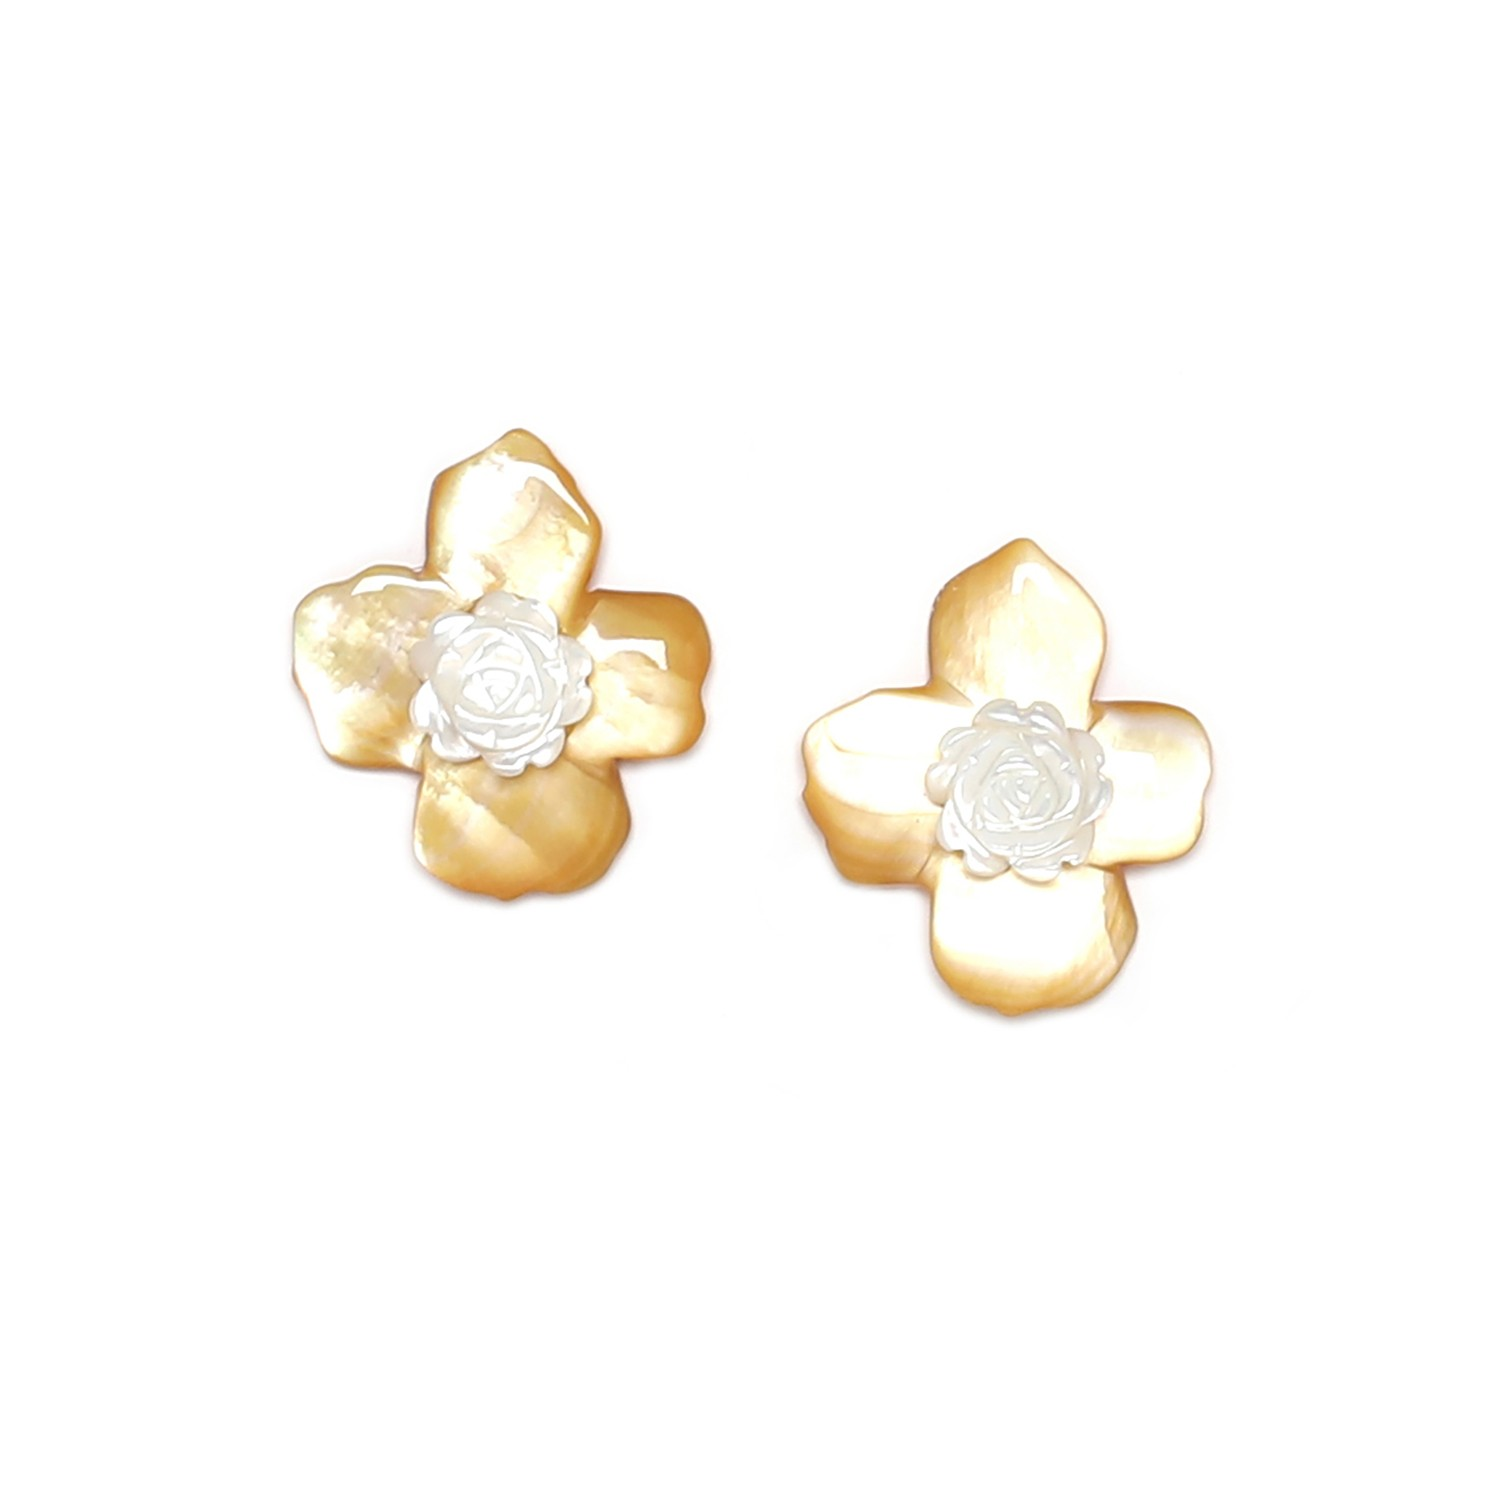 FLEURS DE NACRE golden MoP post earrings